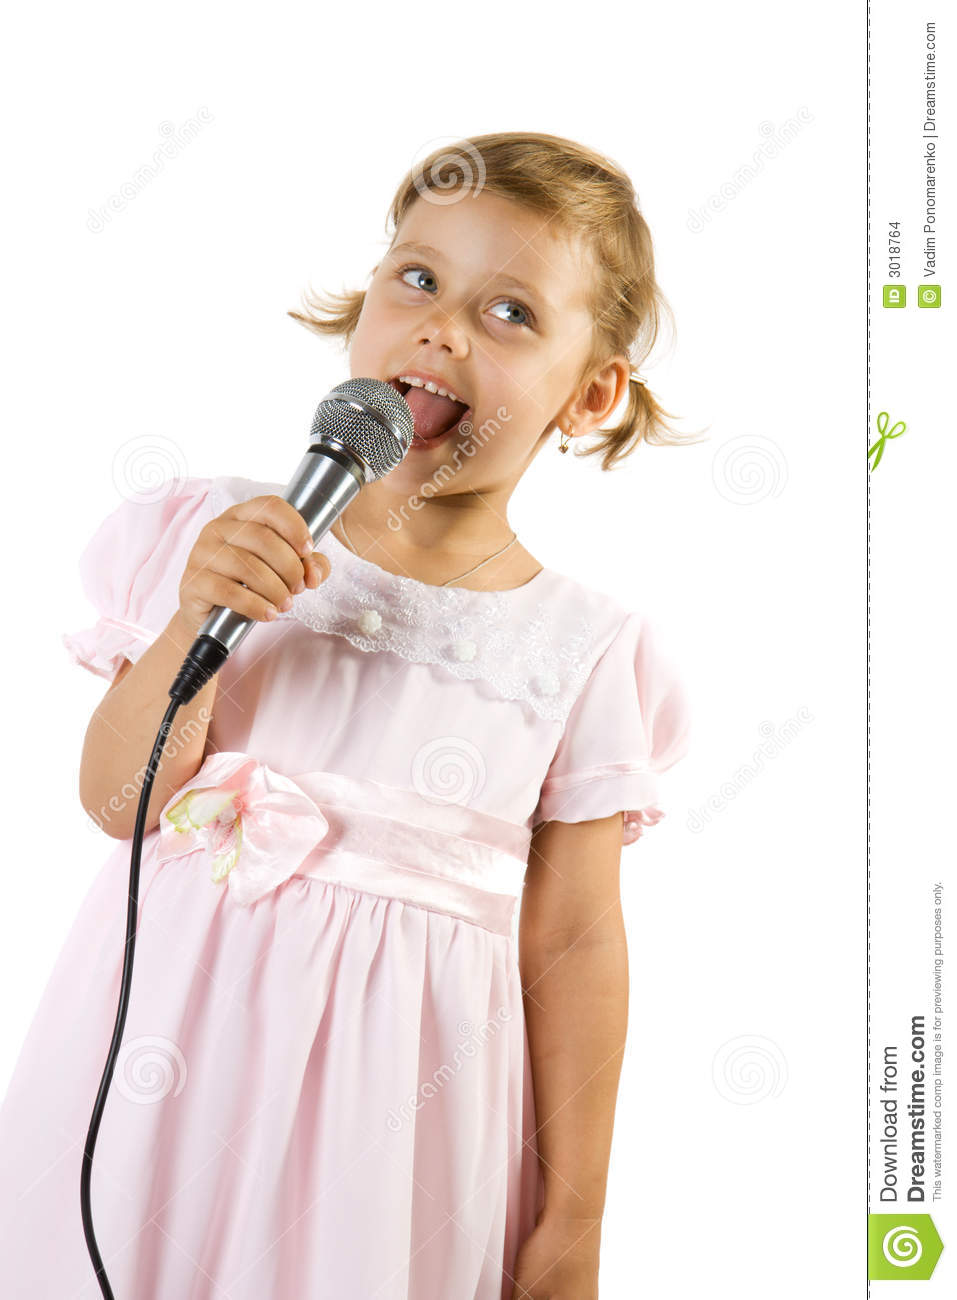 Little girl singing. stock photo. Image of lifestyles ...